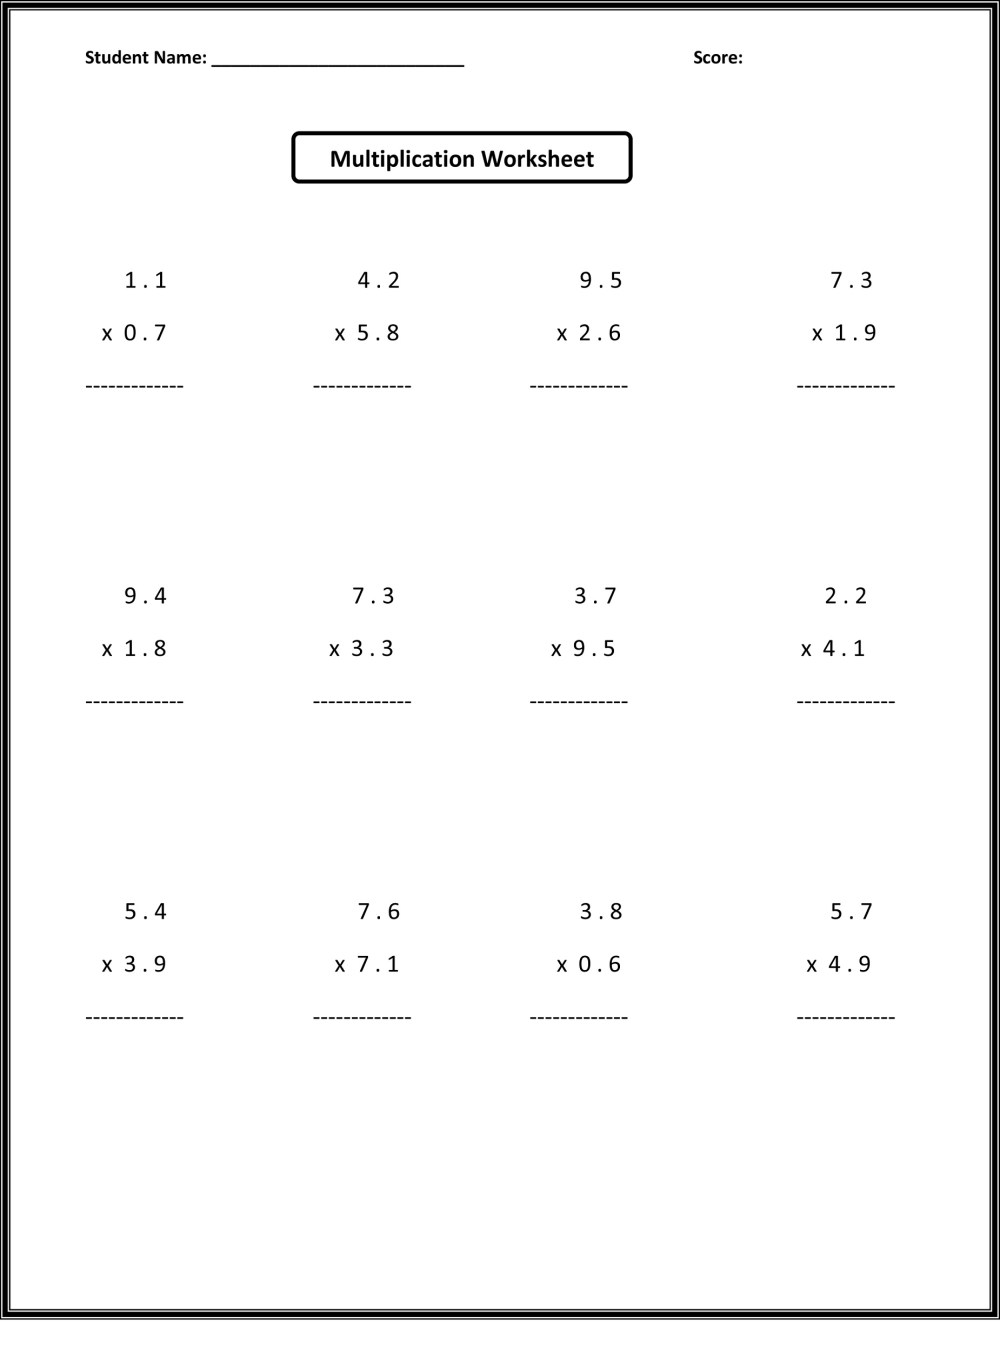 medium resolution of Minute Math Multipulcation Worksheets 6th Grade   Printable Worksheets and  Activities for Teachers